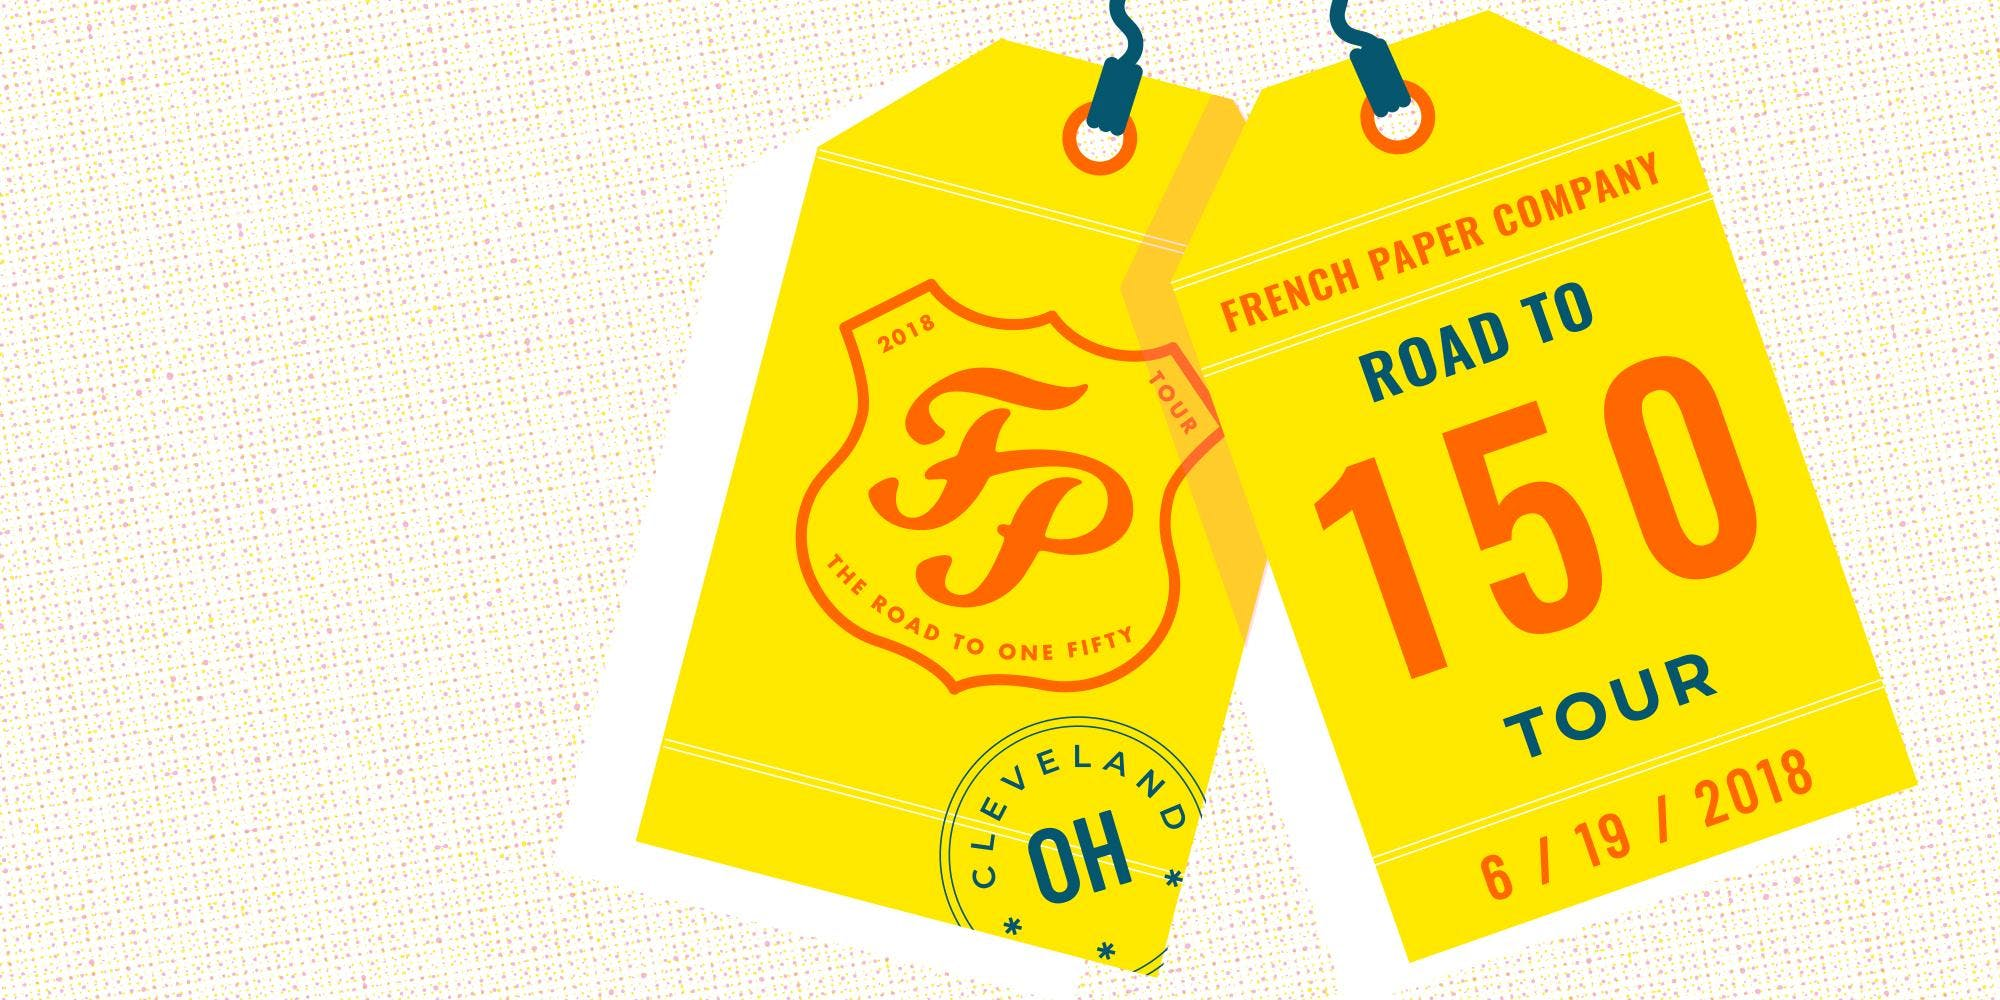 French Papers The Road to 150 Tour Exhibition and Talk with Brian French